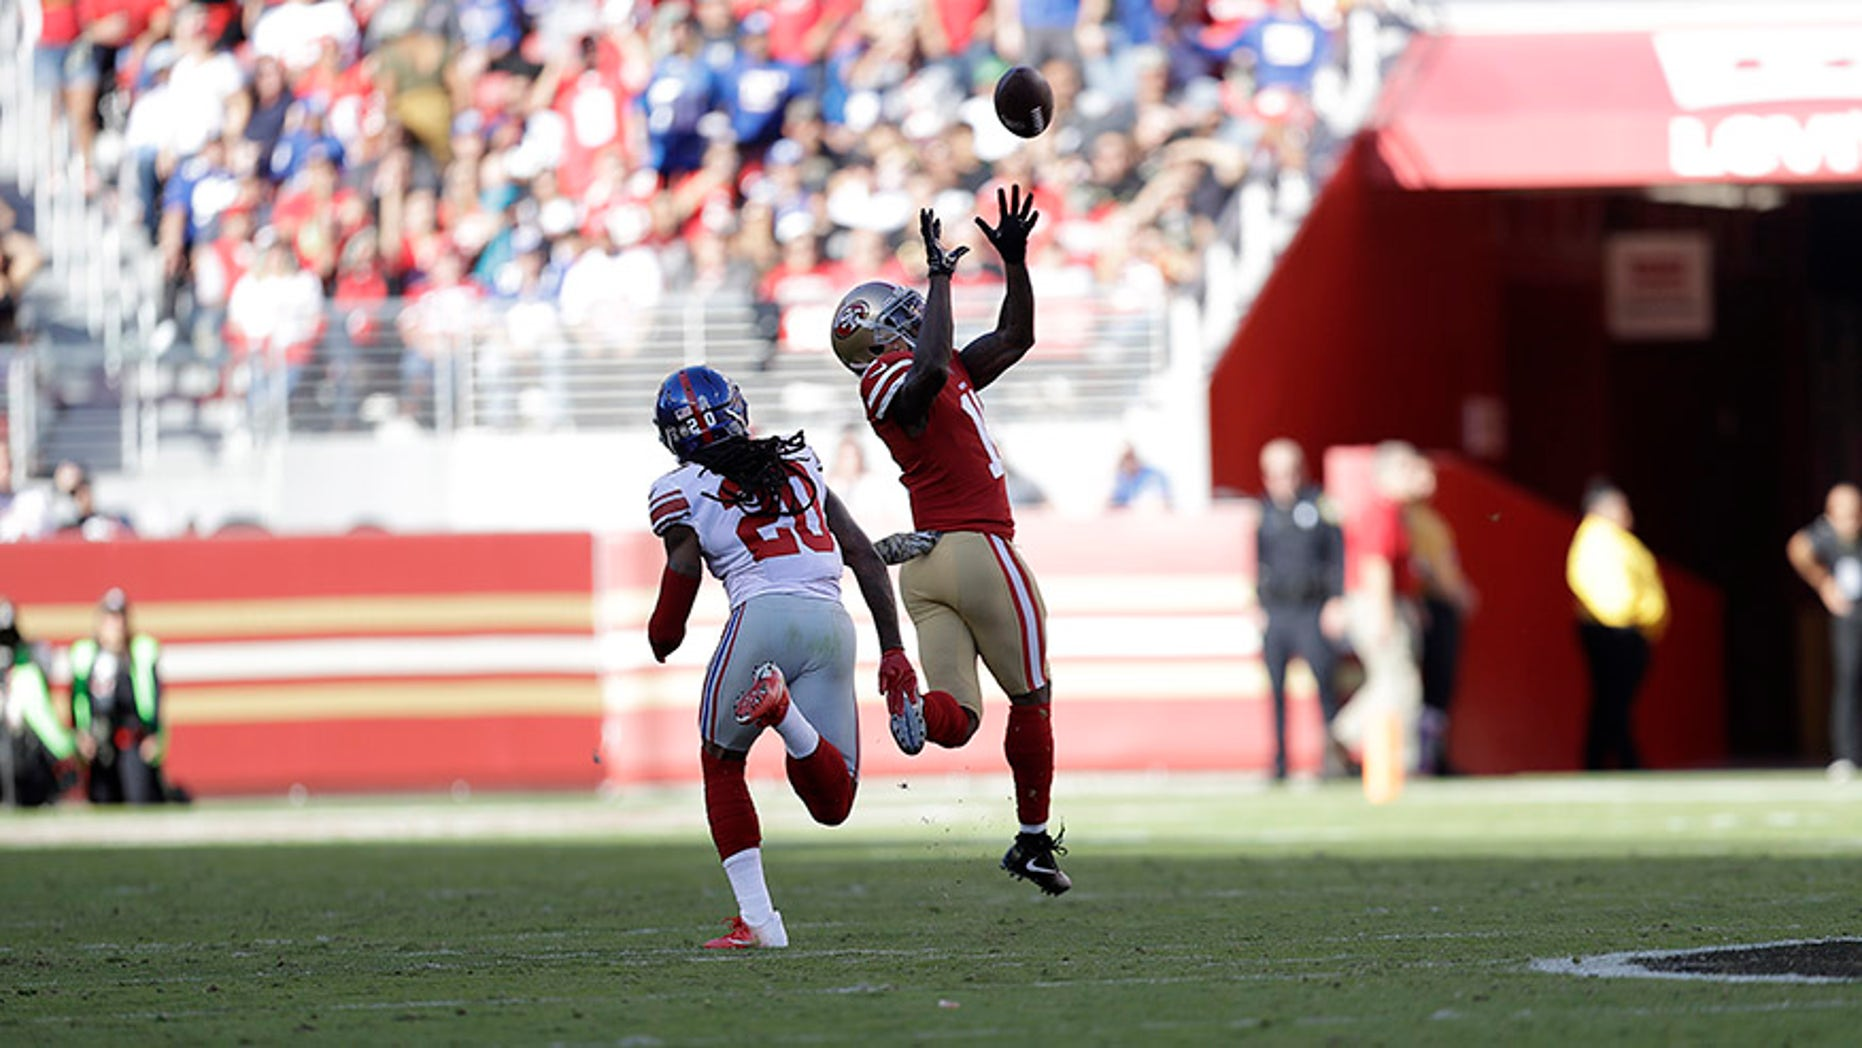 Nov. 12, 2017: San Francisco 49ers wide receiver Marquise Goodwin catches a touchdown pass in front of New York Giants cornerback Janoris Jenkins during the first half of a game in Santa Clara, Calif.,